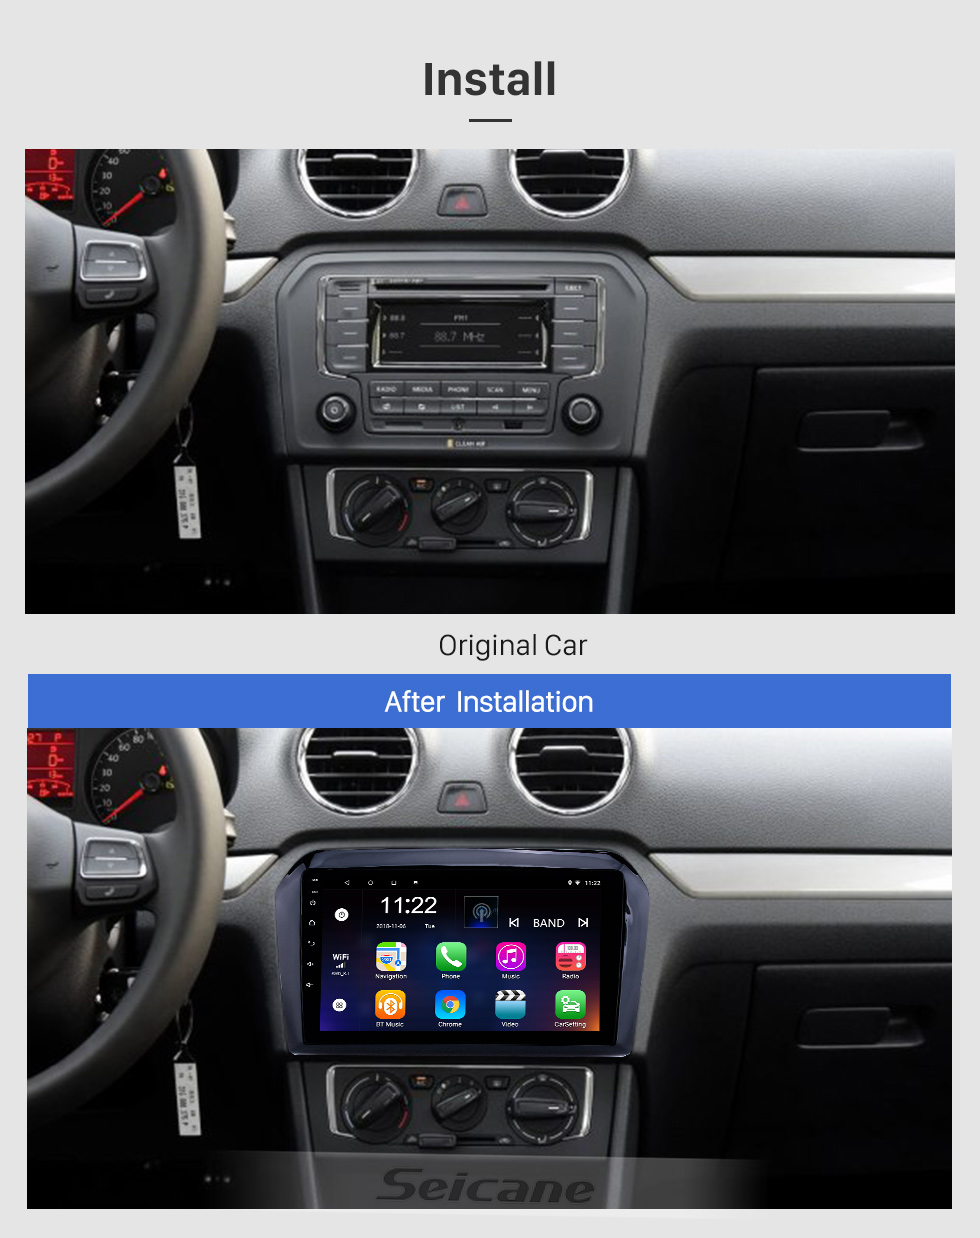 Seicane 2013-2017 VW Volkswagen Jetta Android 8.1 HD Touchscreen 9 inch Head Unit Bluetooth GPS Navigation Radio with AUX support SWC Carplay